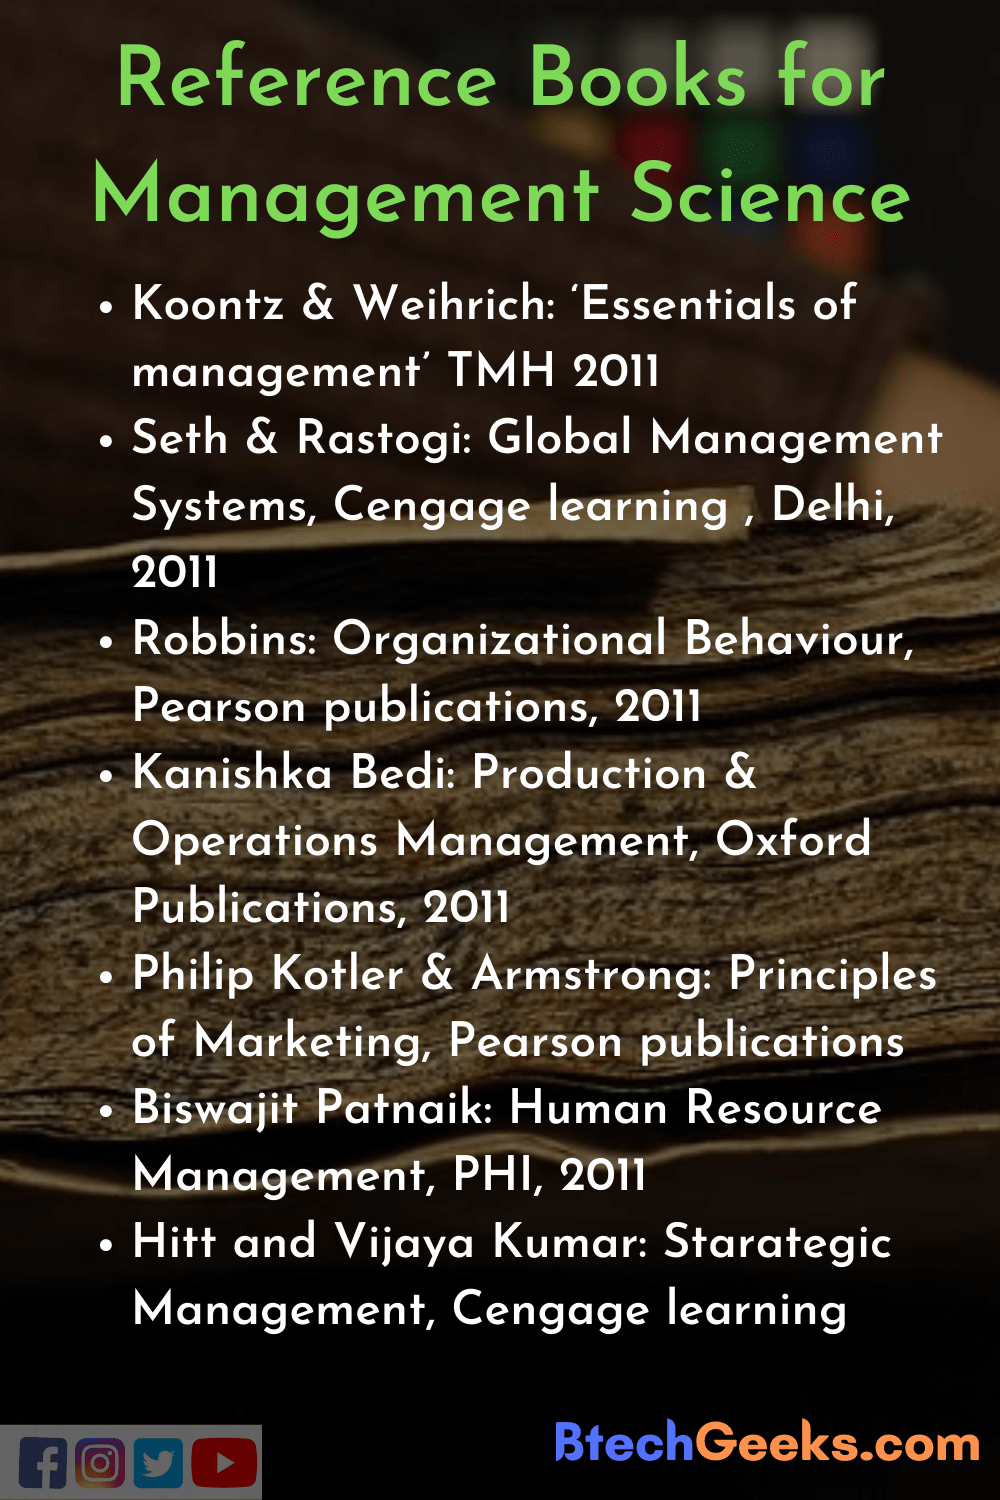 List of MS Reference Books